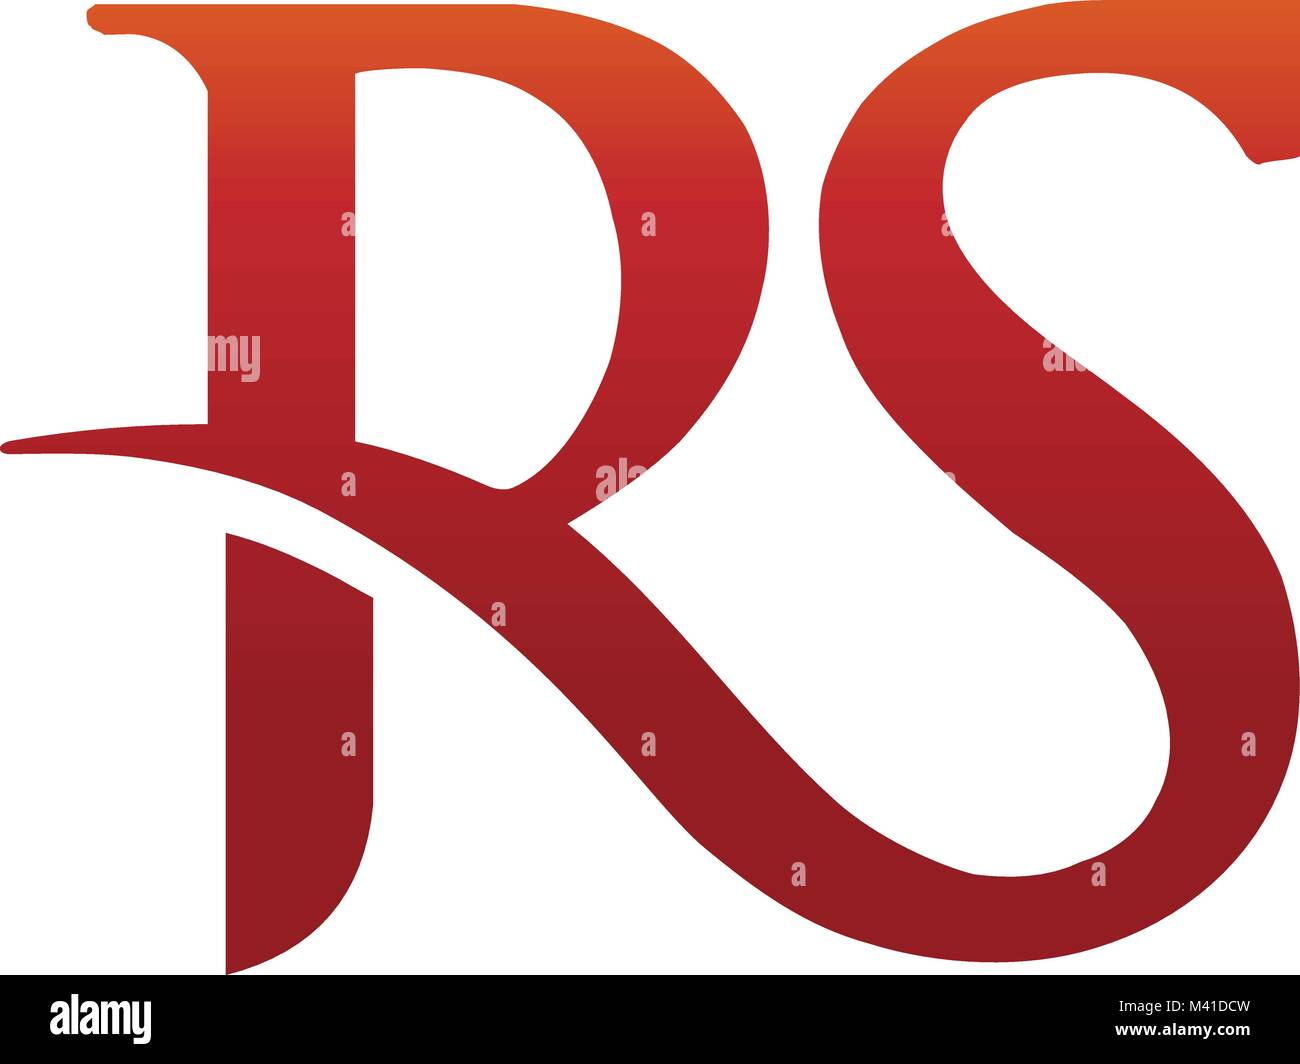 Rs symbol stock photos rs symbol stock images alamy elegant concept logo elements letter rs vector image stock image buycottarizona Image collections